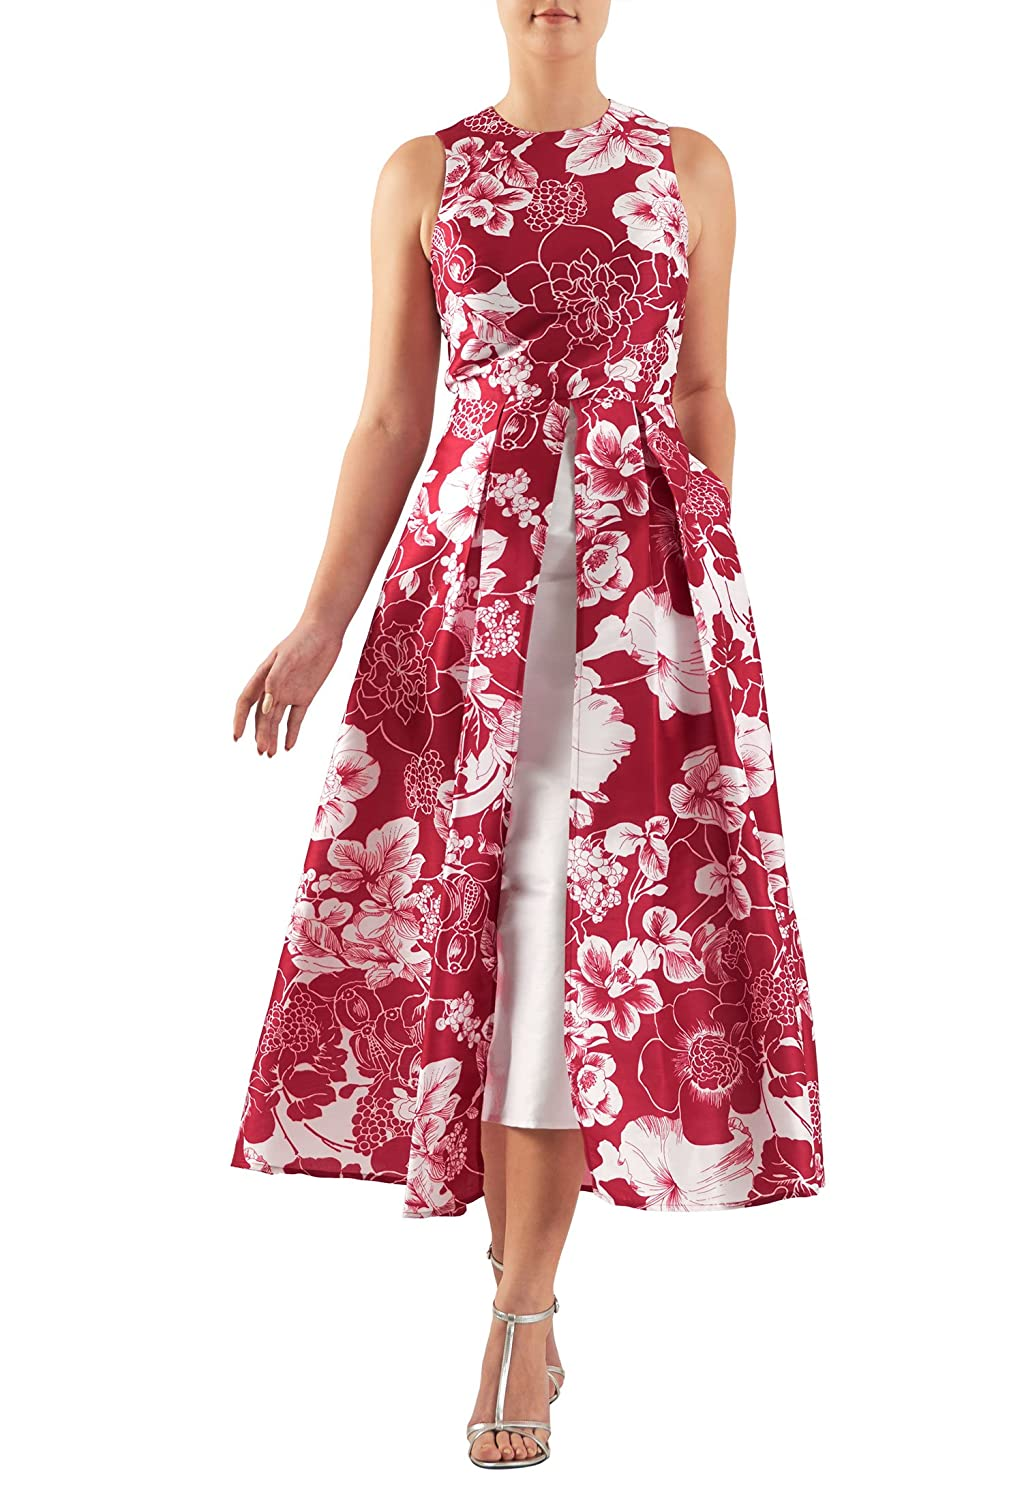 Plus Size Vintage Dresses, Plus Size Retro Dresses Hostess- Floral print dupioni inset front dress $66.95 AT vintagedancer.com